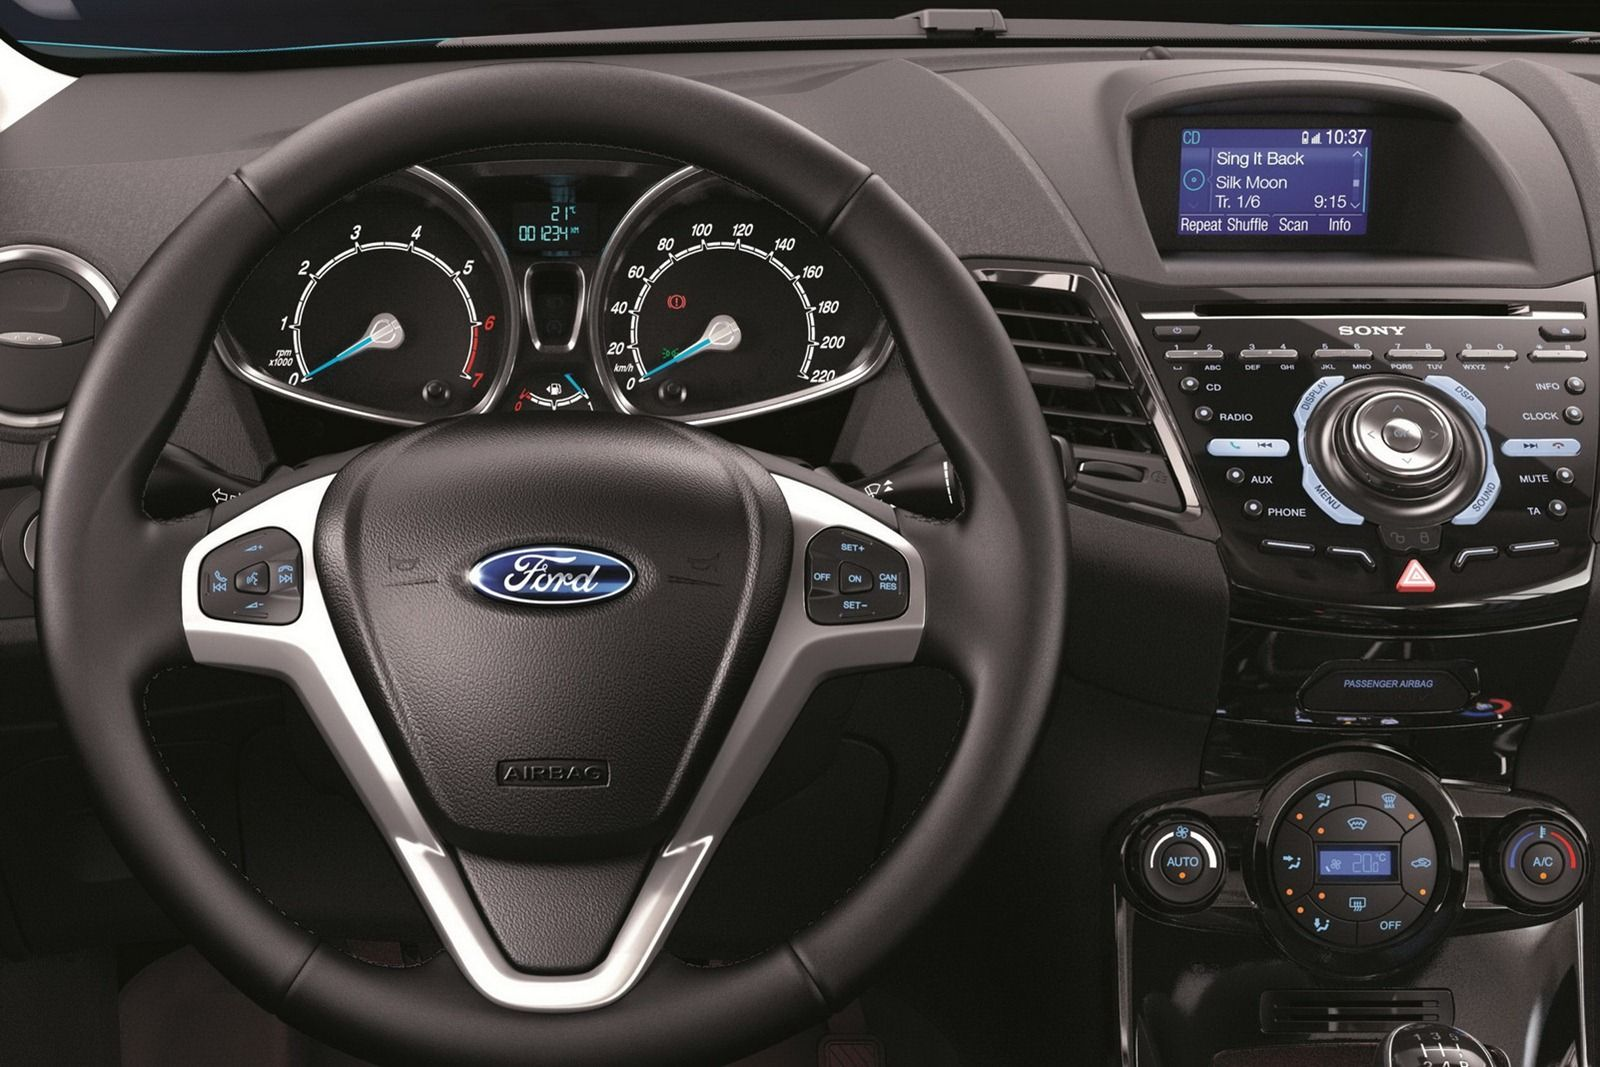 2015 Ford Fiesta Car lease, Ford, Ford fiesta